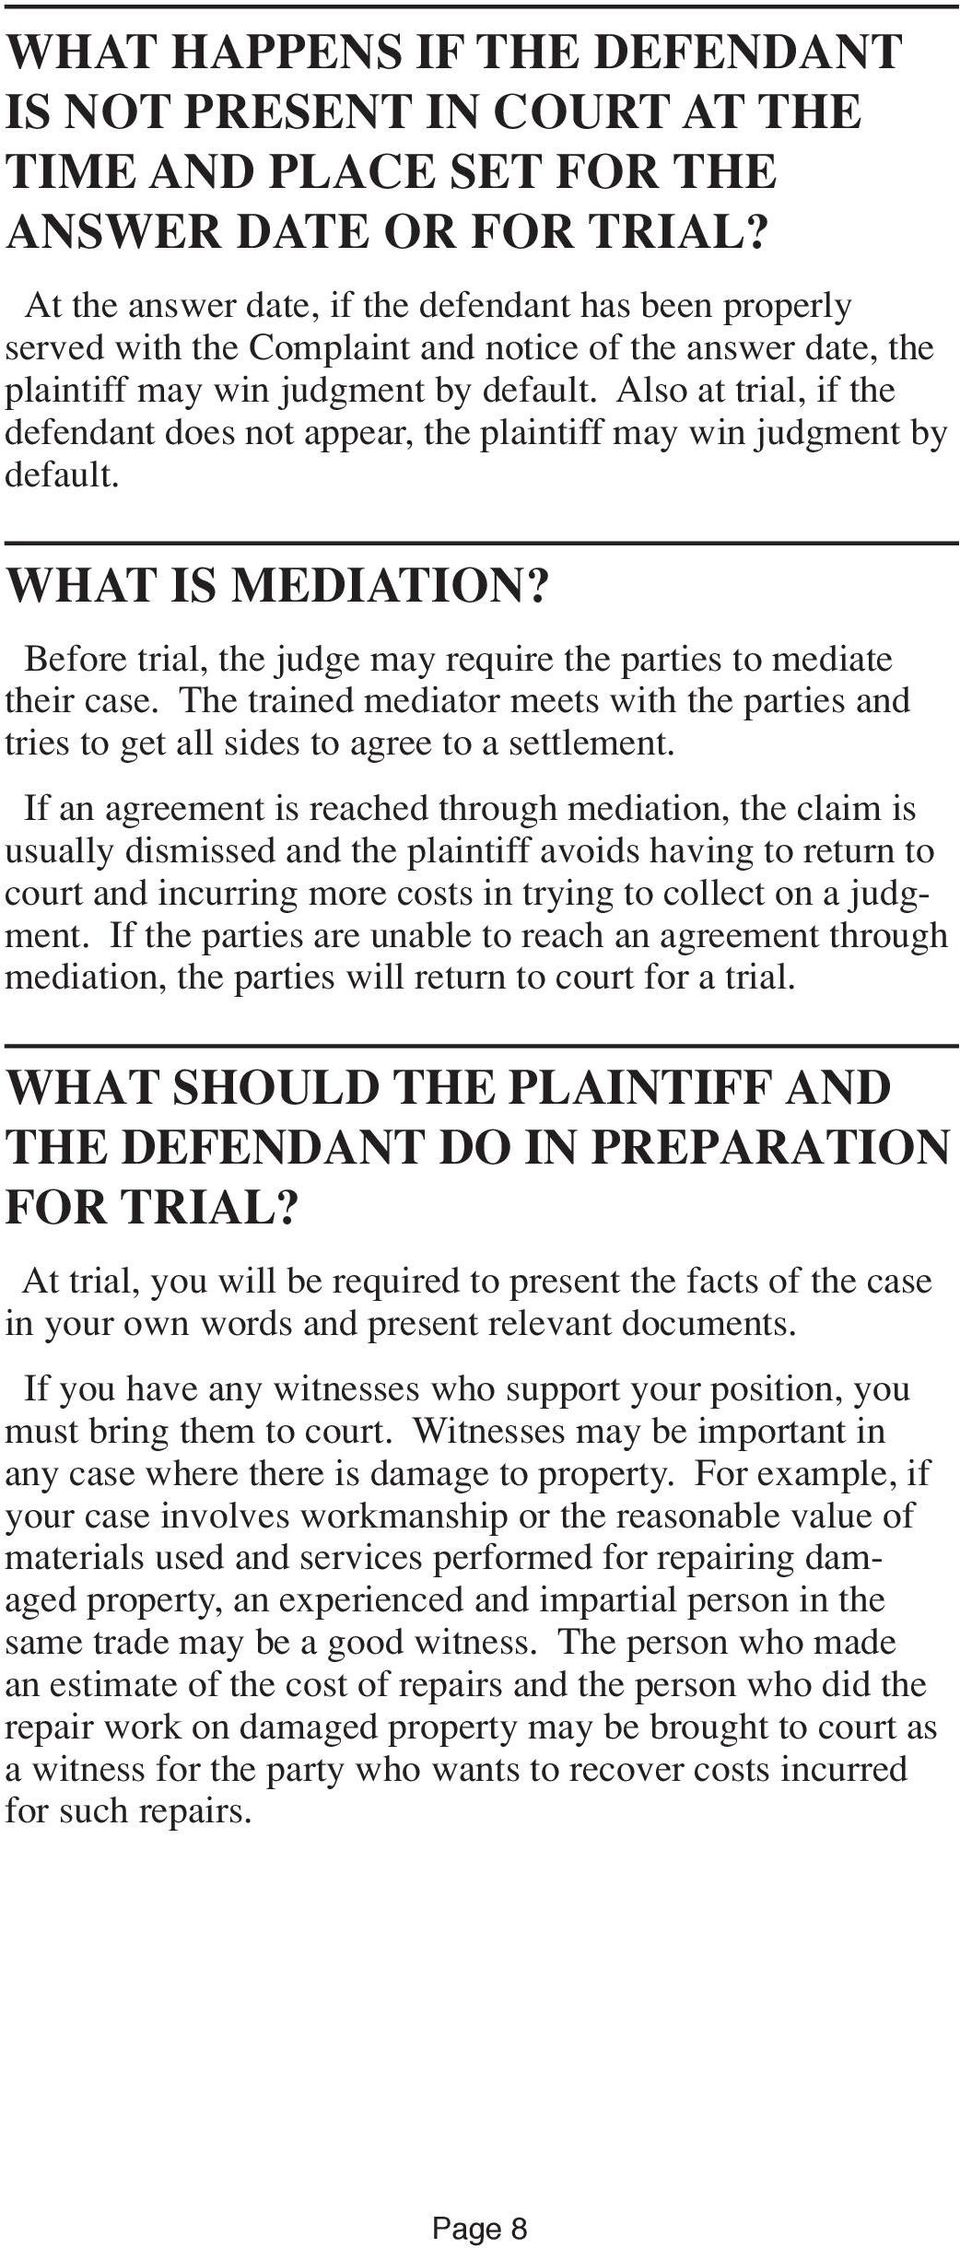 Also at trial, if the defendant does not appear, the plaintiff may win judgment by default. WHAT IS MEDIATION? Before trial, the judge may require the parties to mediate their case.